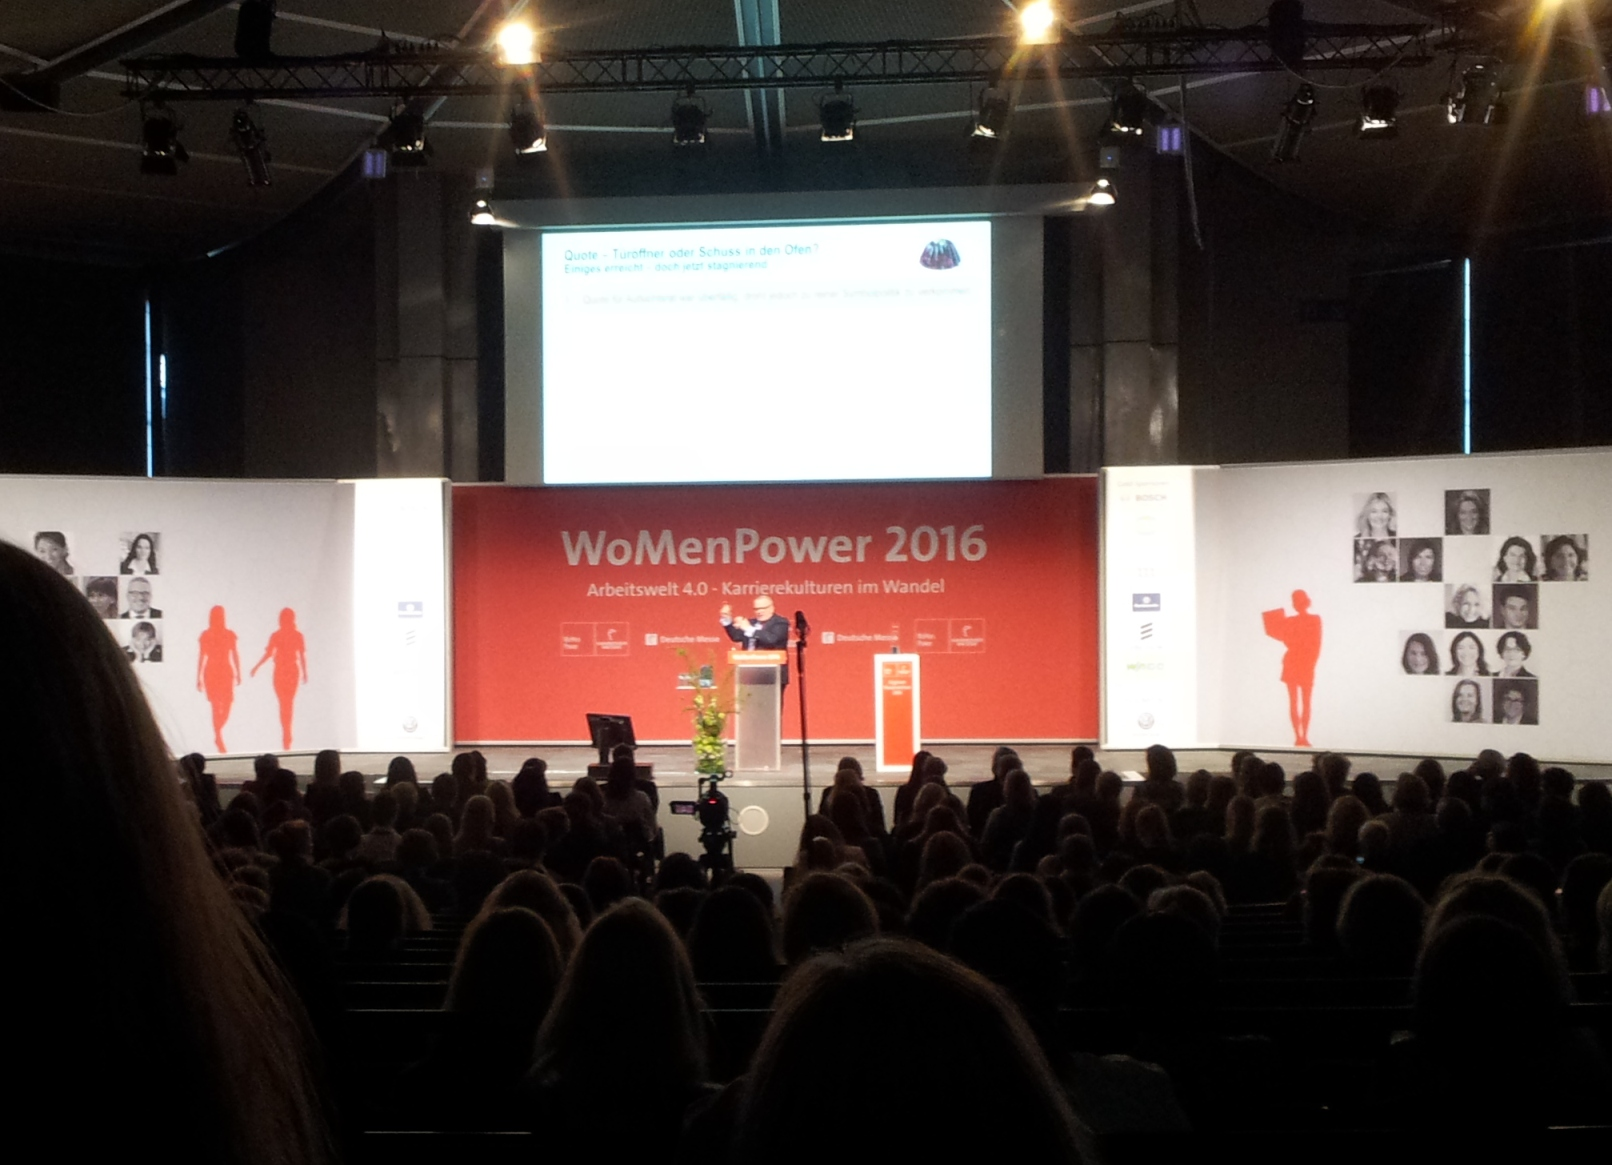 WoMenPower 2016